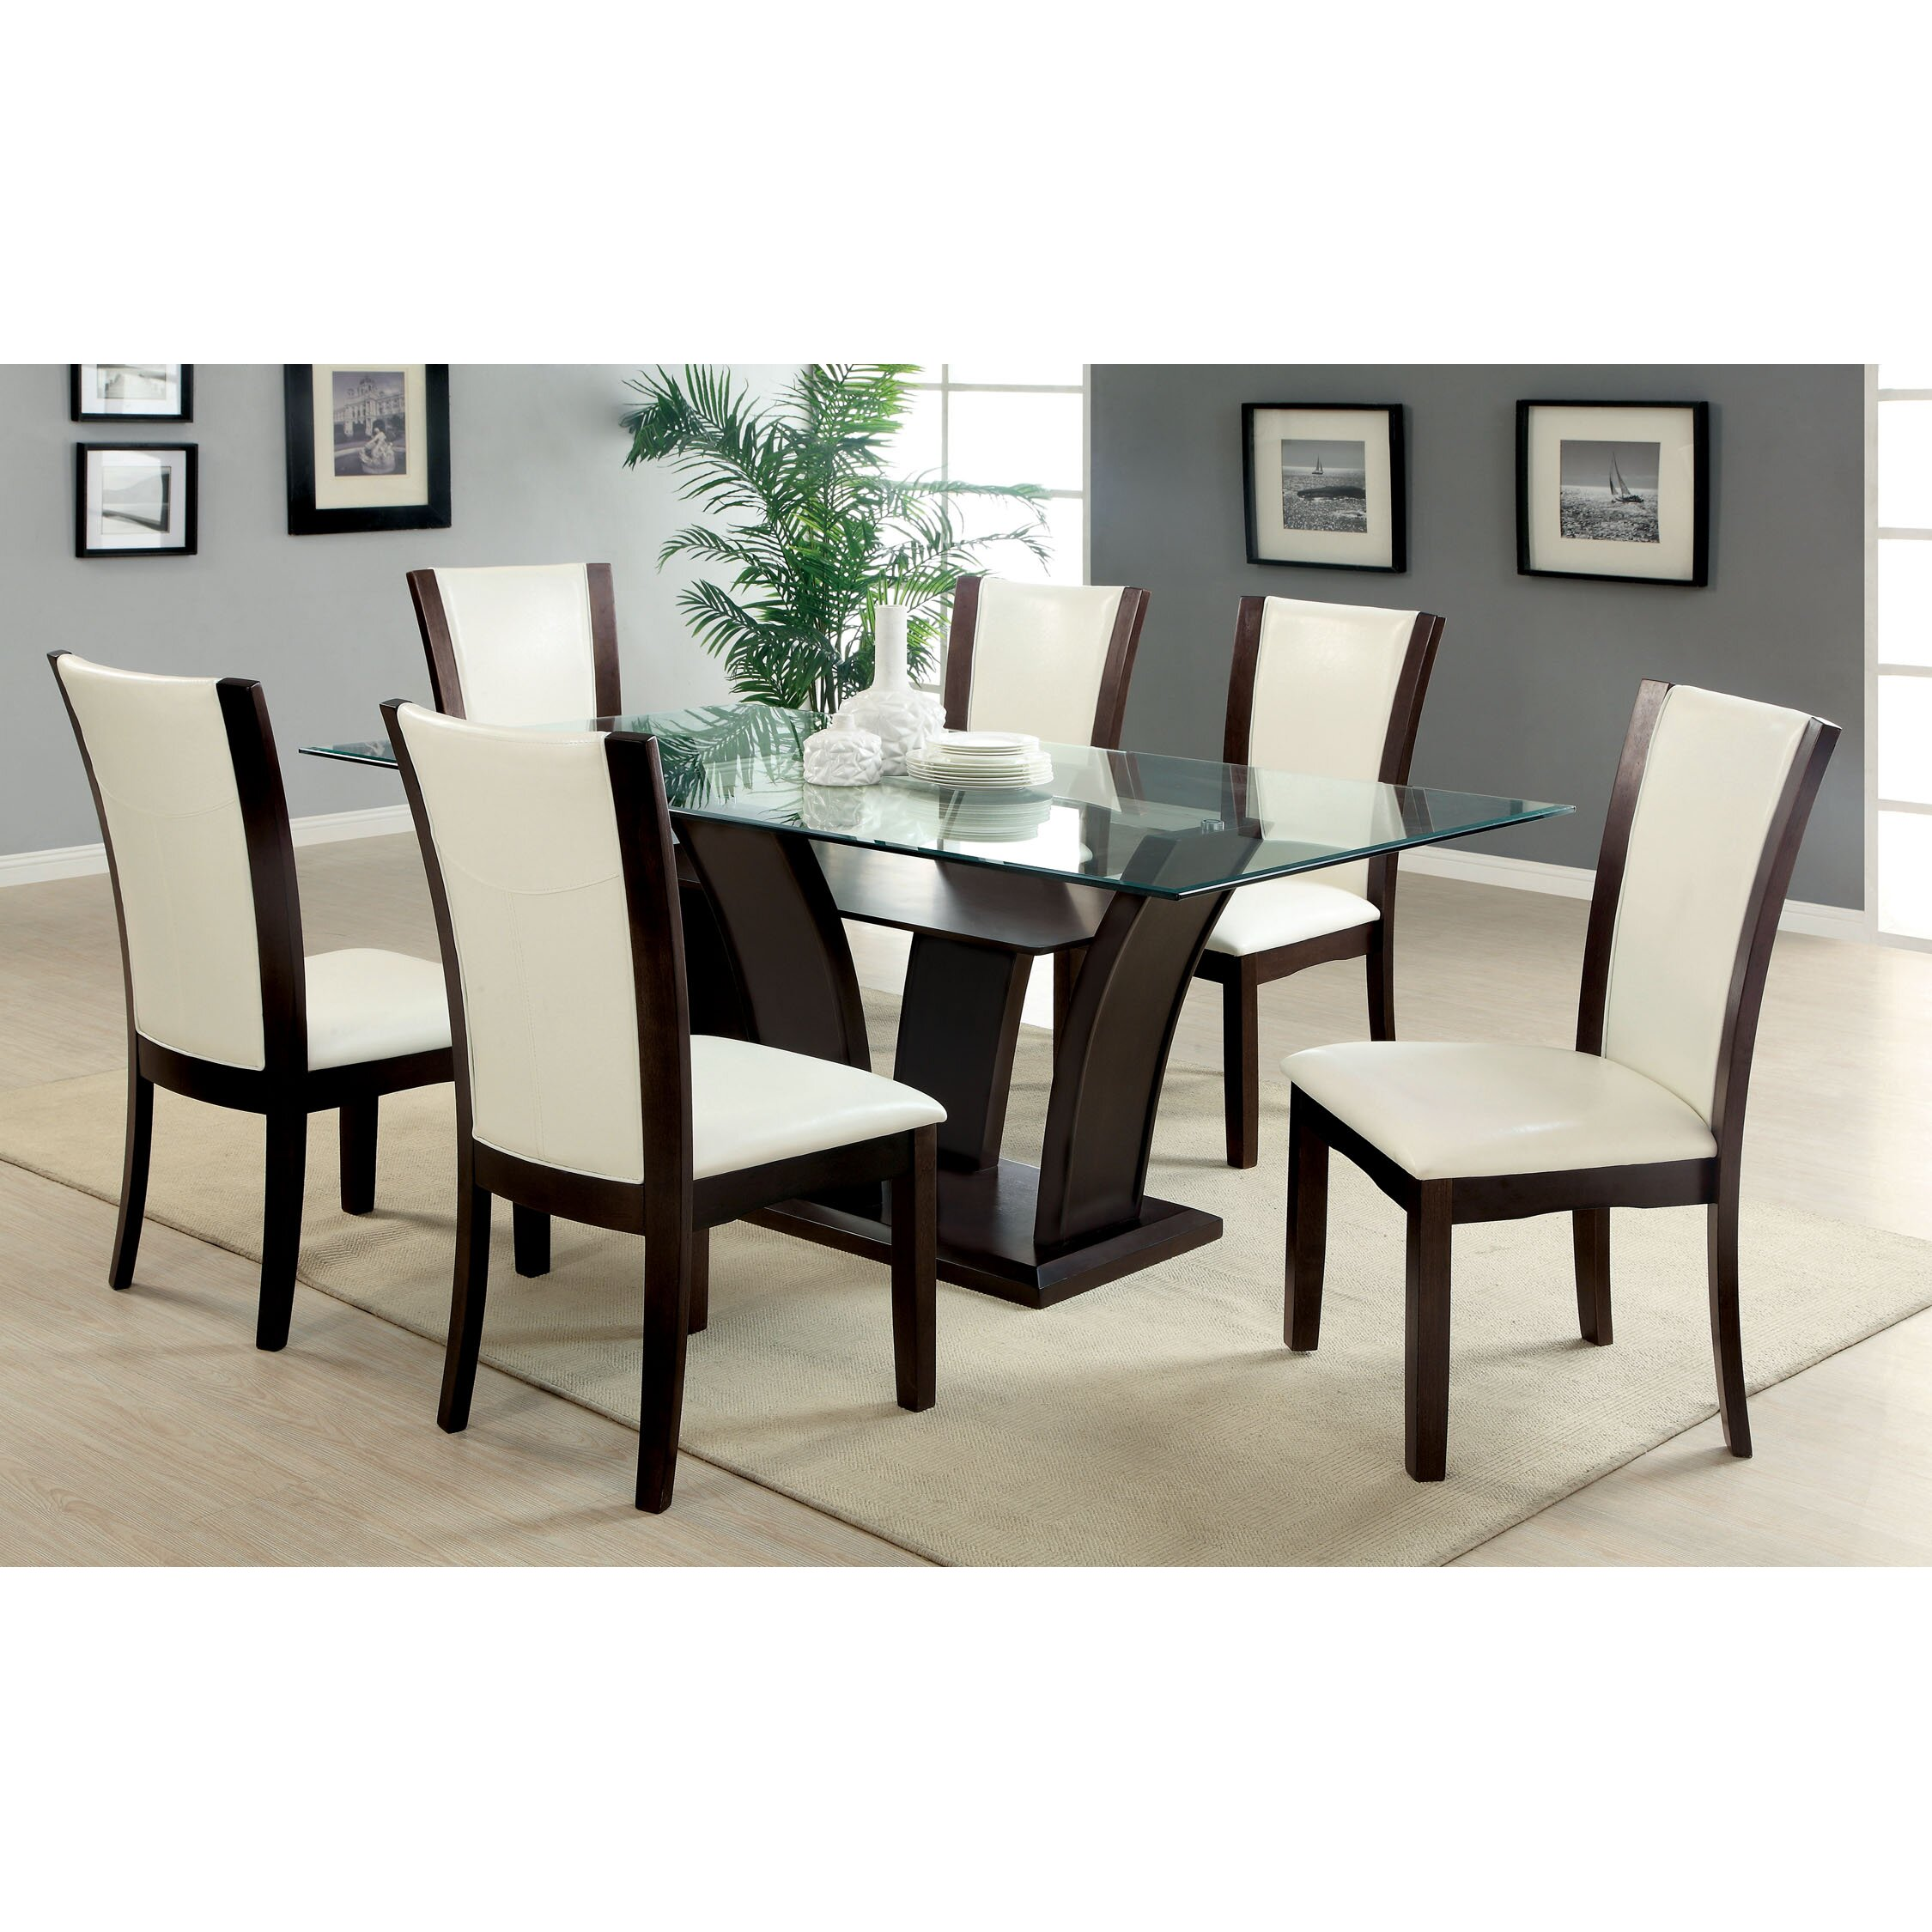 Hokku designs carmilla 7 piece dining set reviews wayfair for Furniture 7 reviews